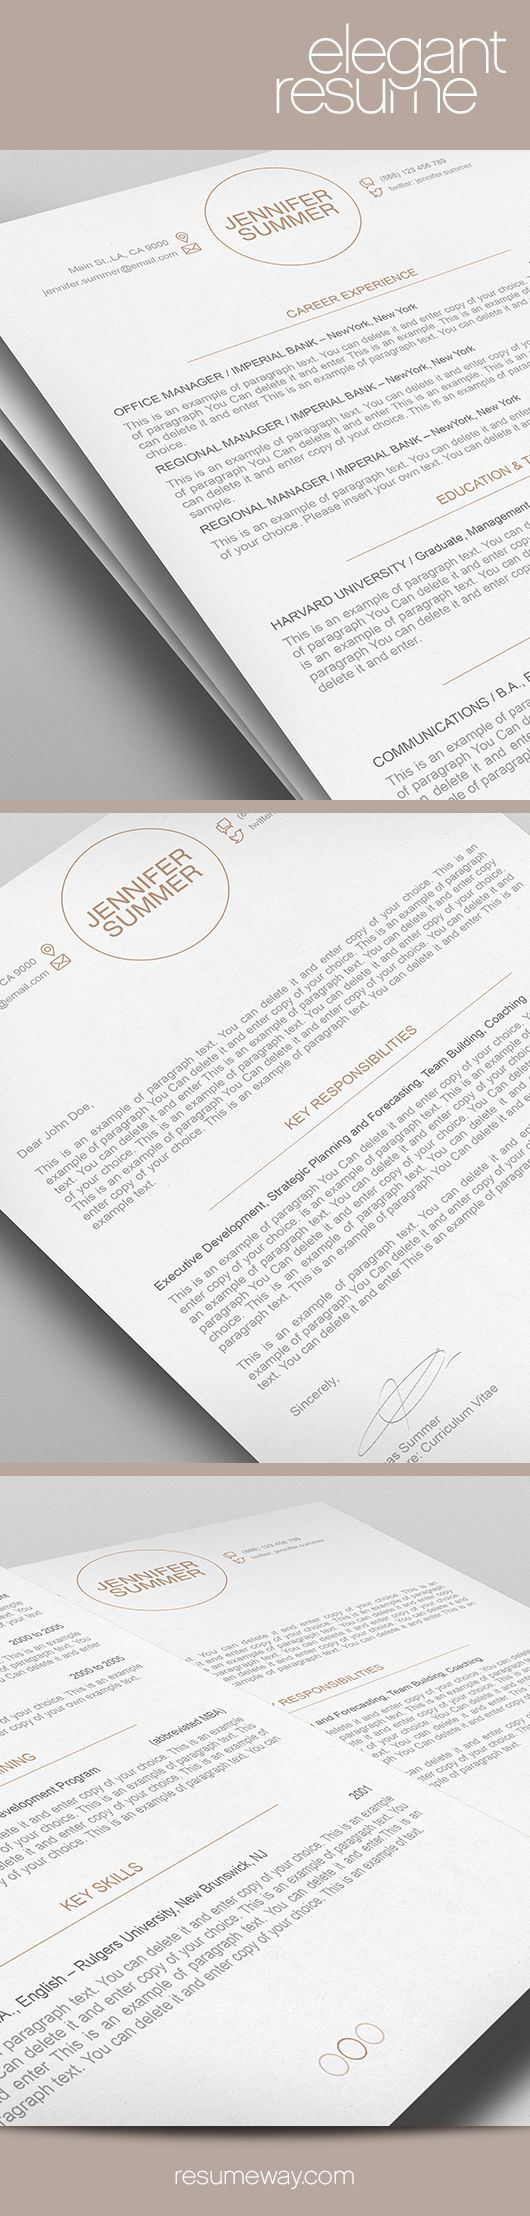 best images about cv templates elegant words 17 best images about cv templates elegant words products and resume design